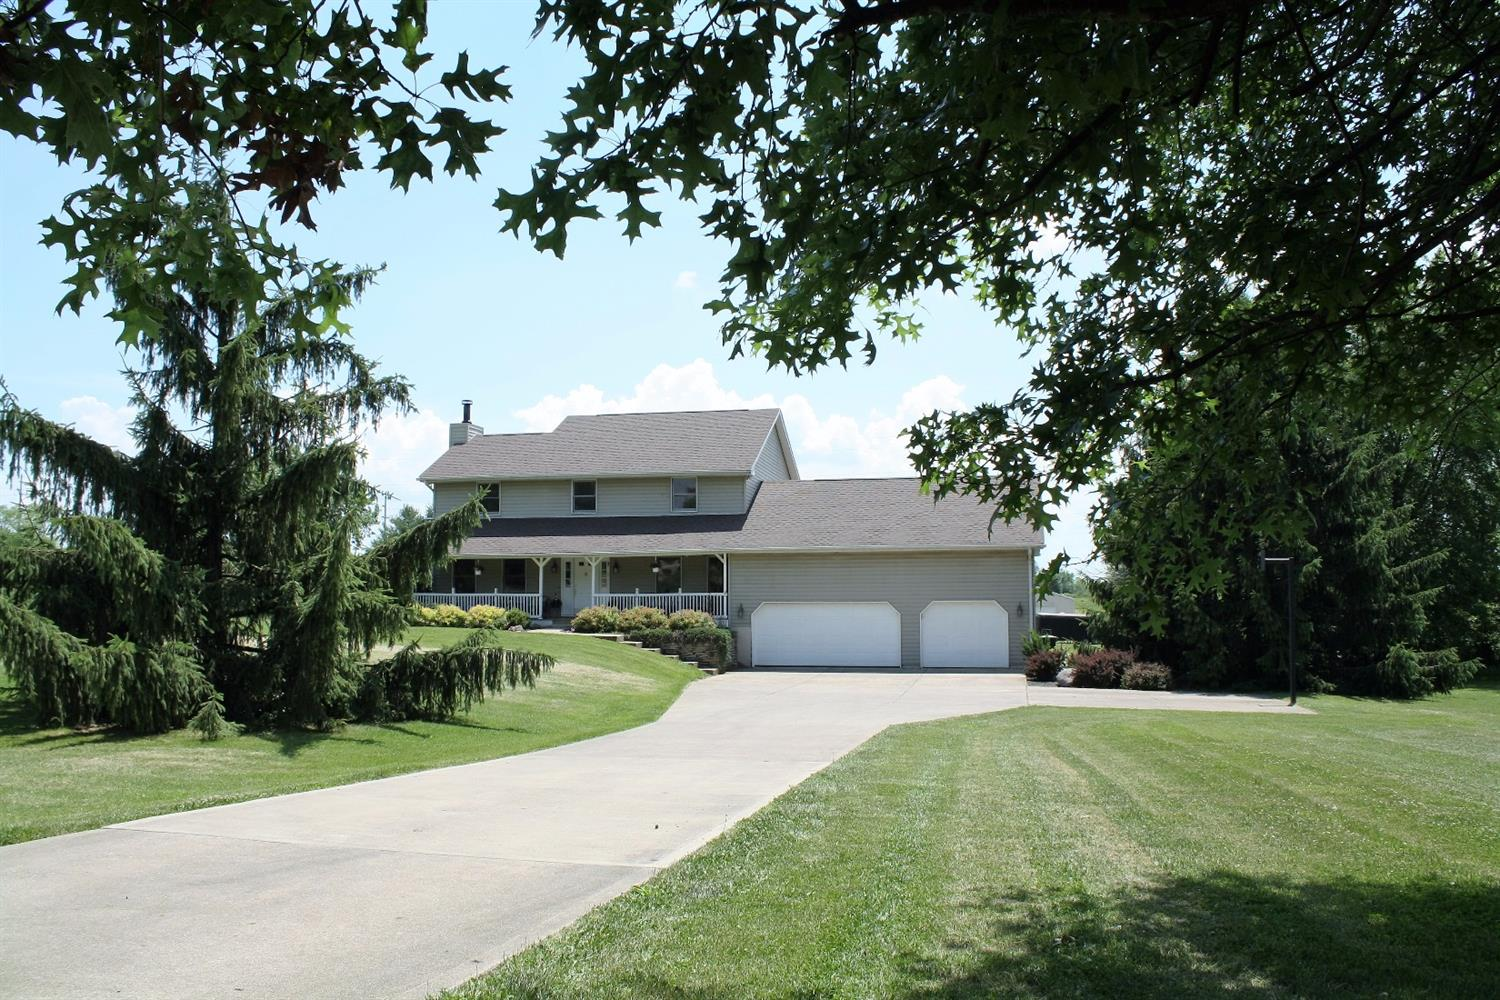 4311 Withrow Rd Wayne Twp. (Butler Co.), OH